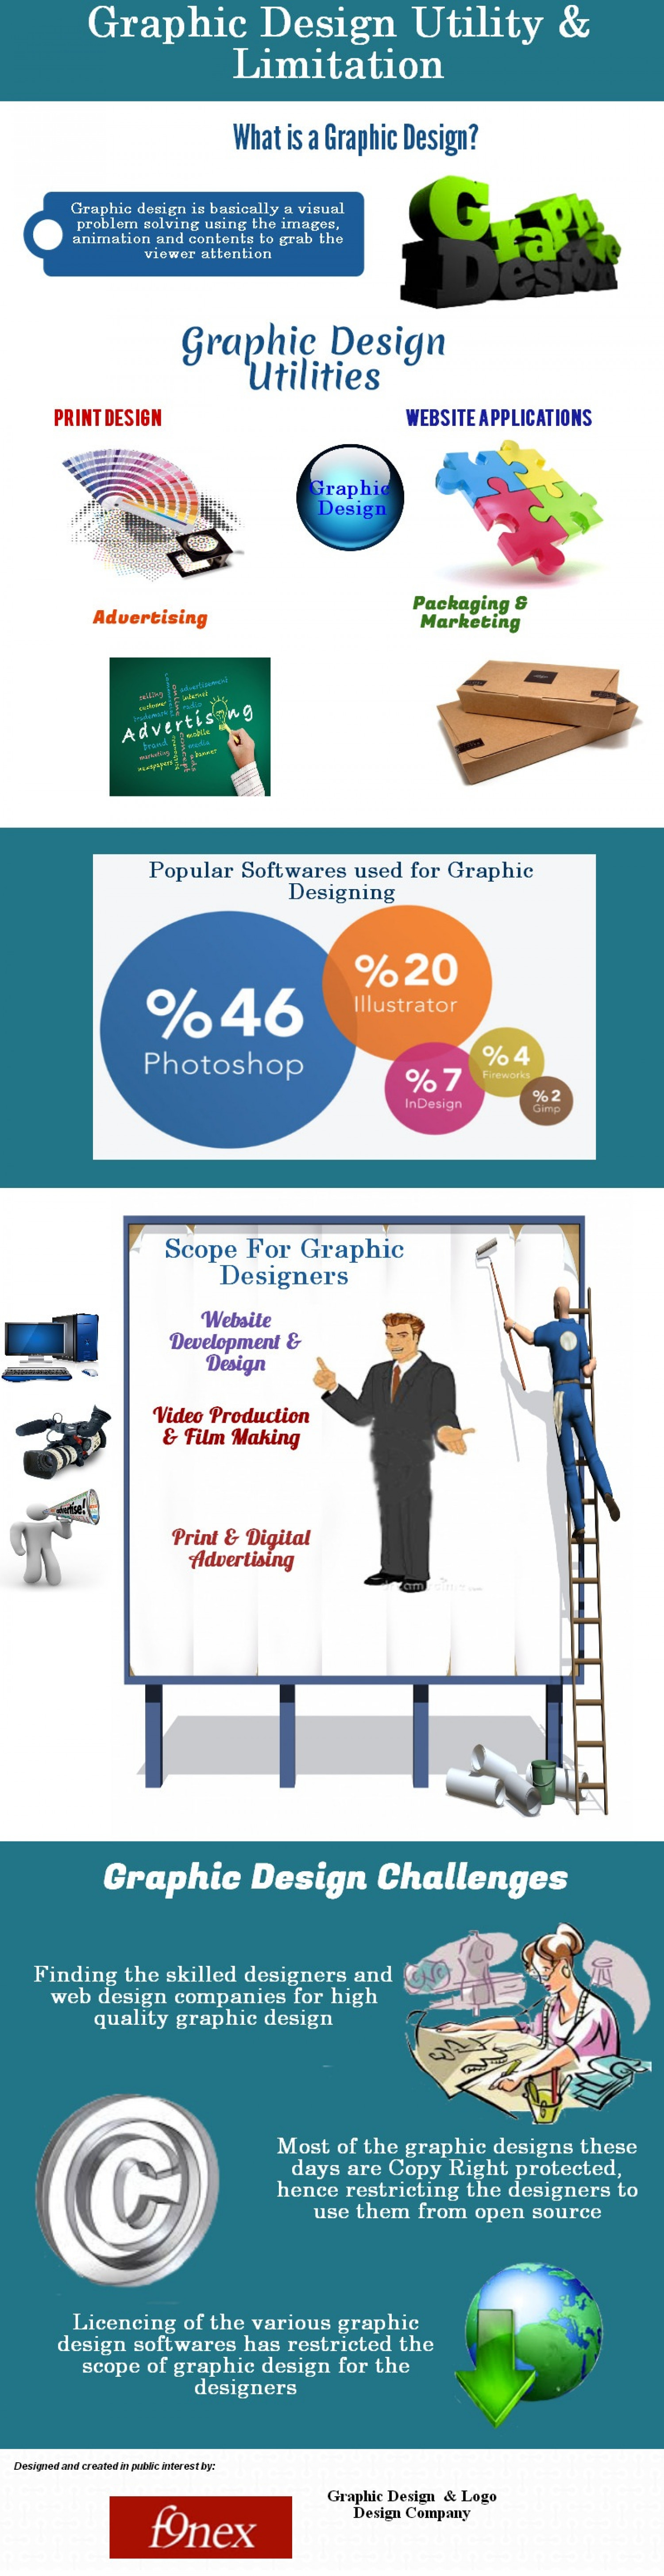 Graphic Design Utility & Limitation Infographic